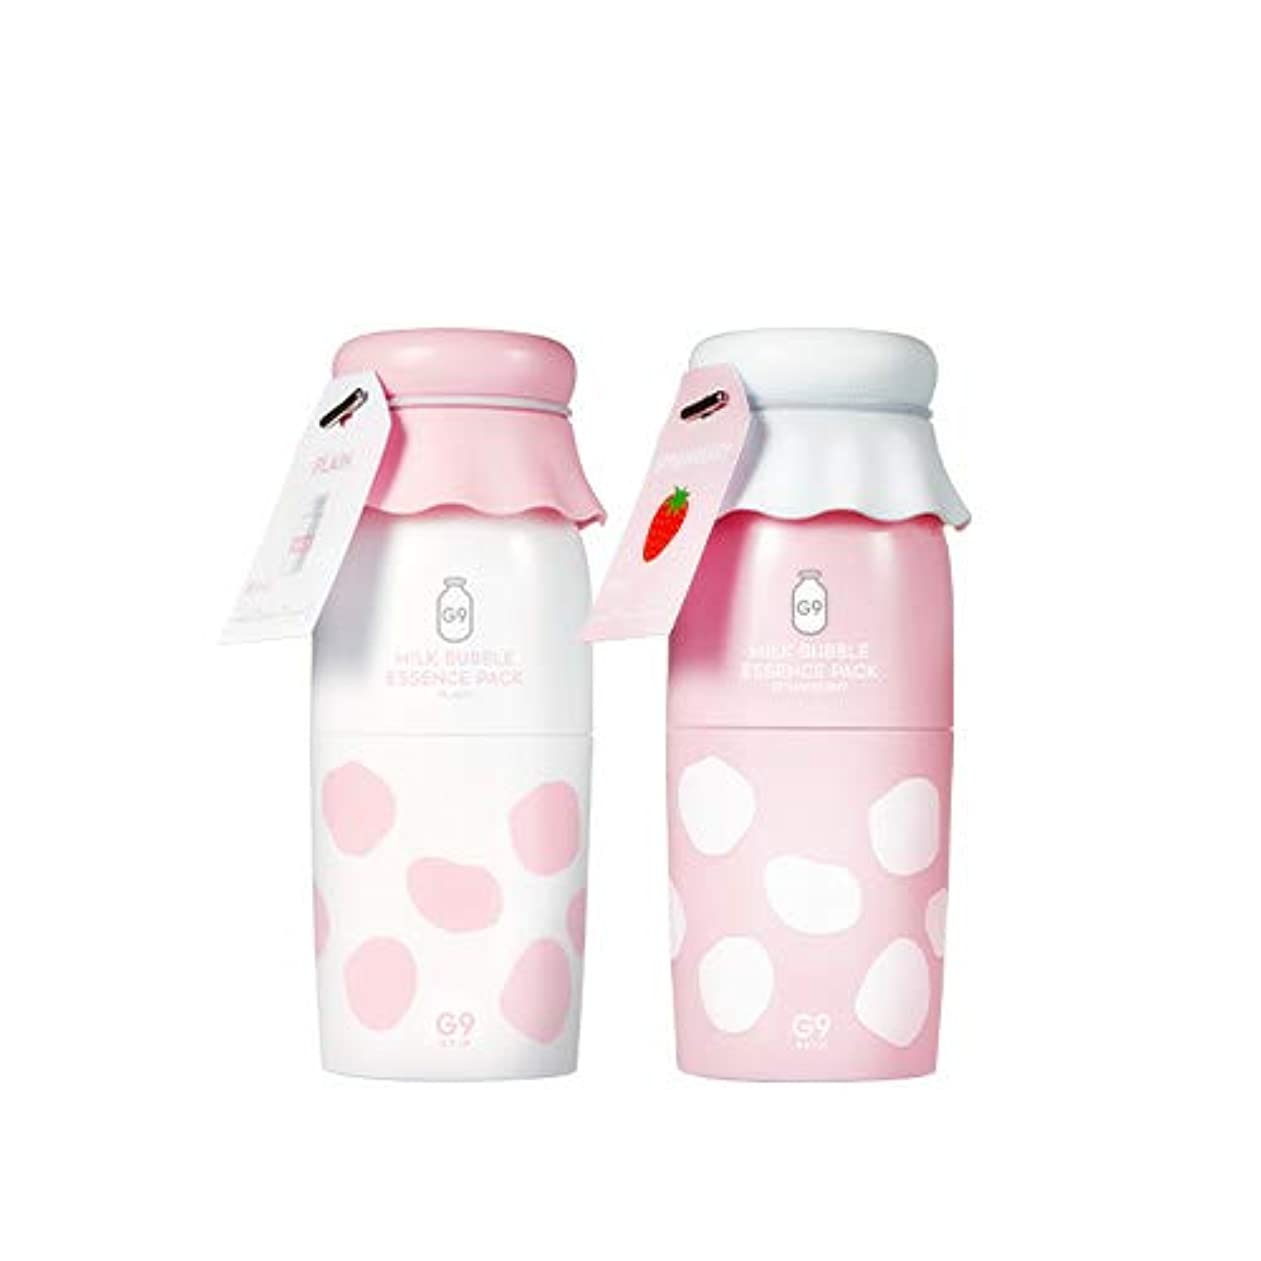 [G9SKIN] MILK BUBBLE ESSENCE PACK ミルクバブルエッセンスパック_STRAWBERRY